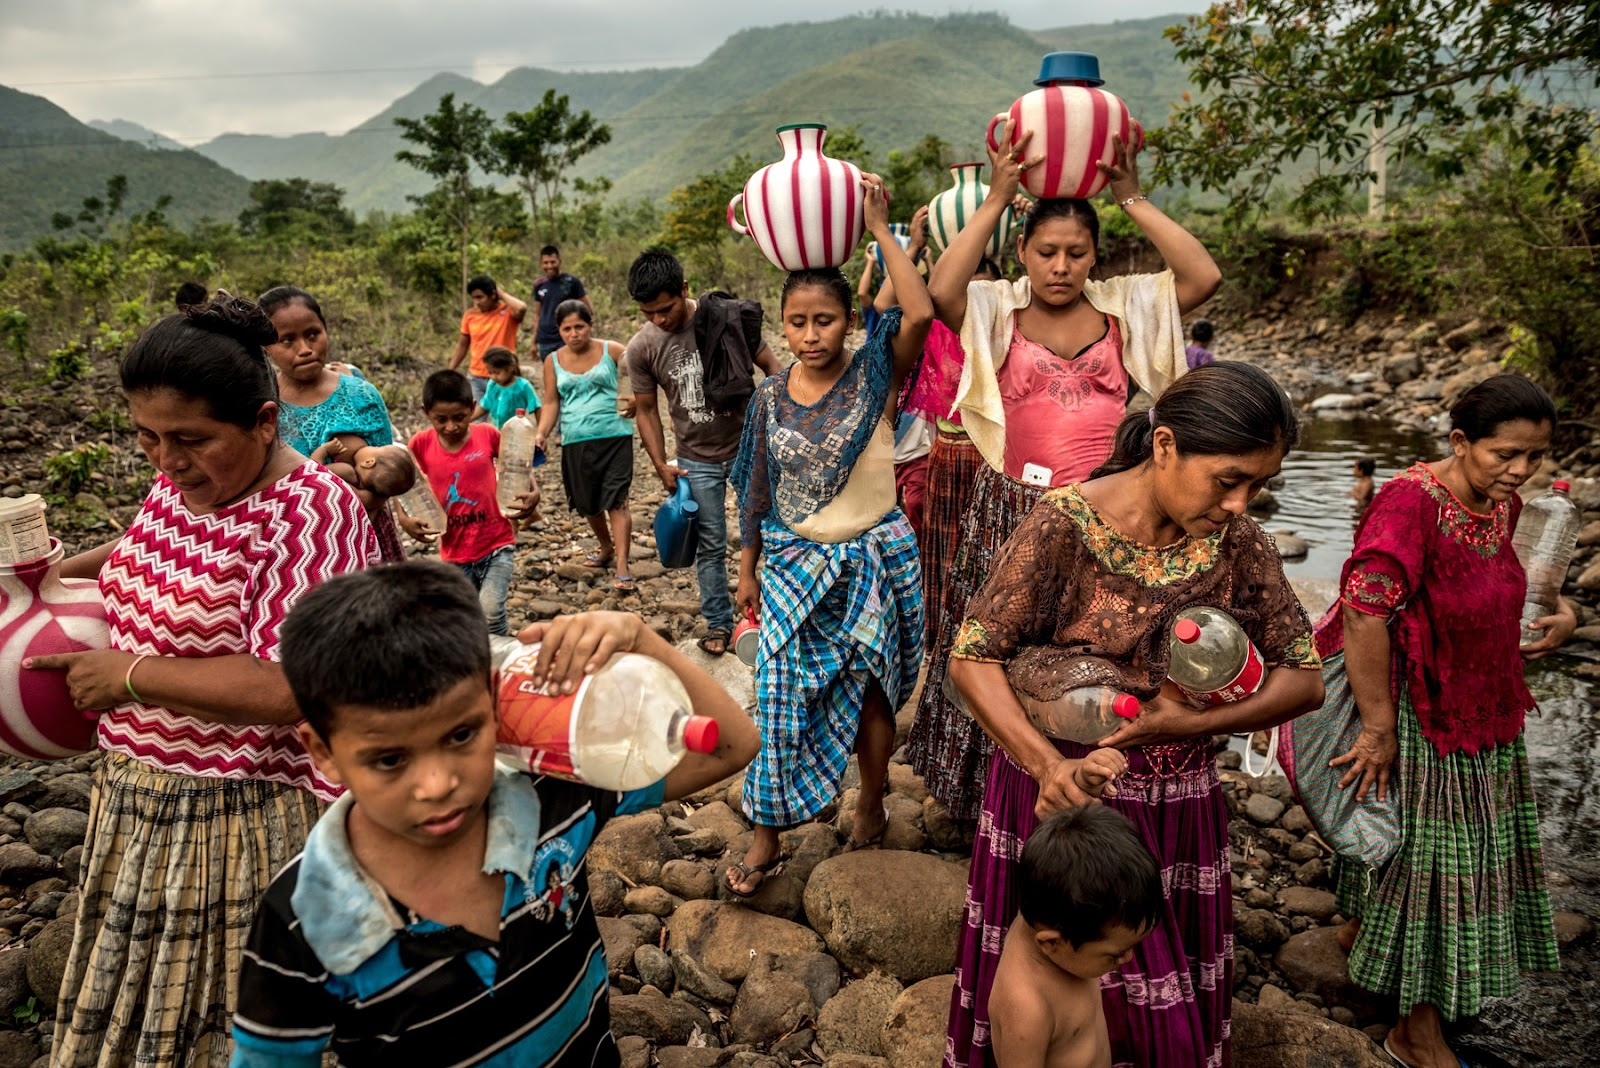 A group of women and children carry jugs and 2-liter soda bottles of water in a lush and mountainous landscape